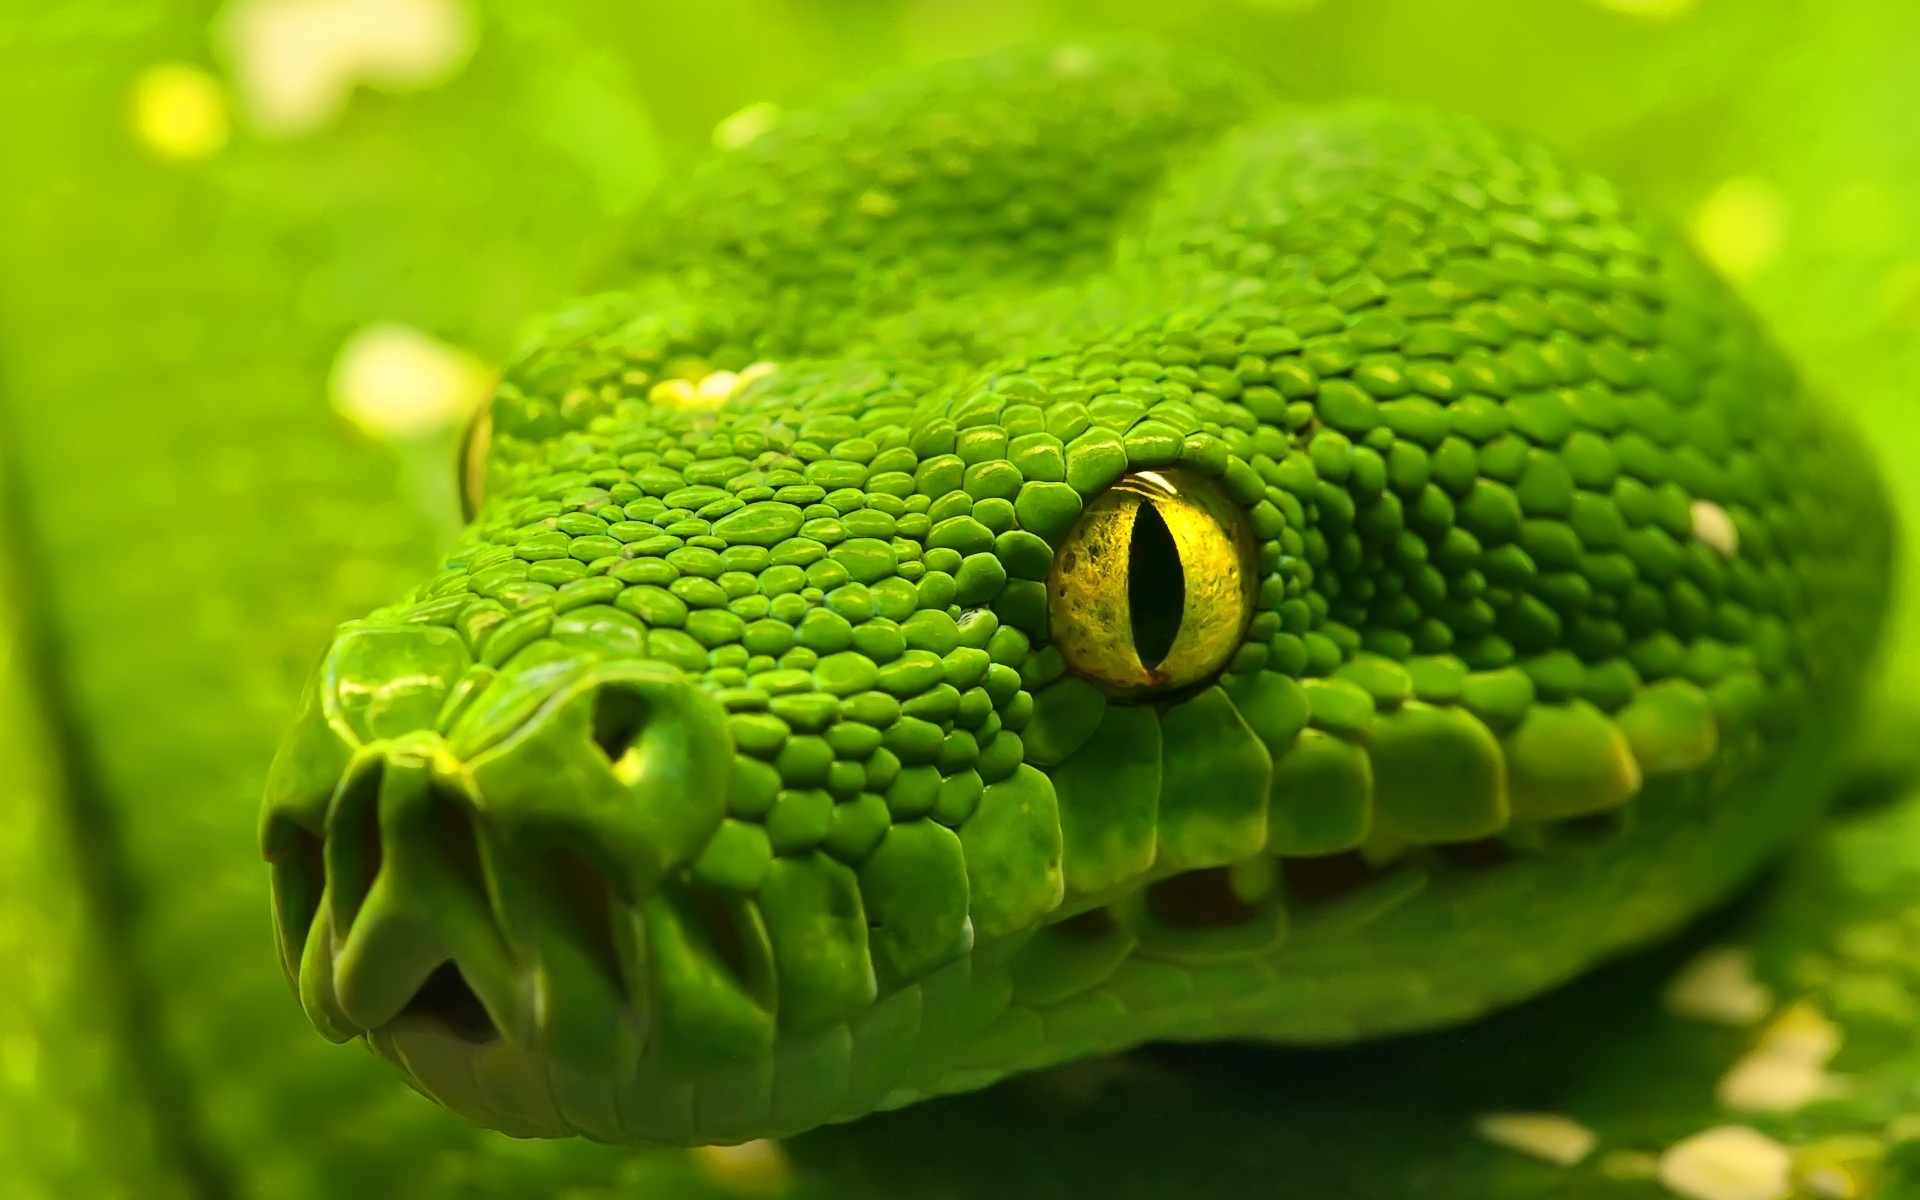 green-anaconda-widescreen-wallpapers-free-download-best-desktop-background-wallpapers-of-anaconda